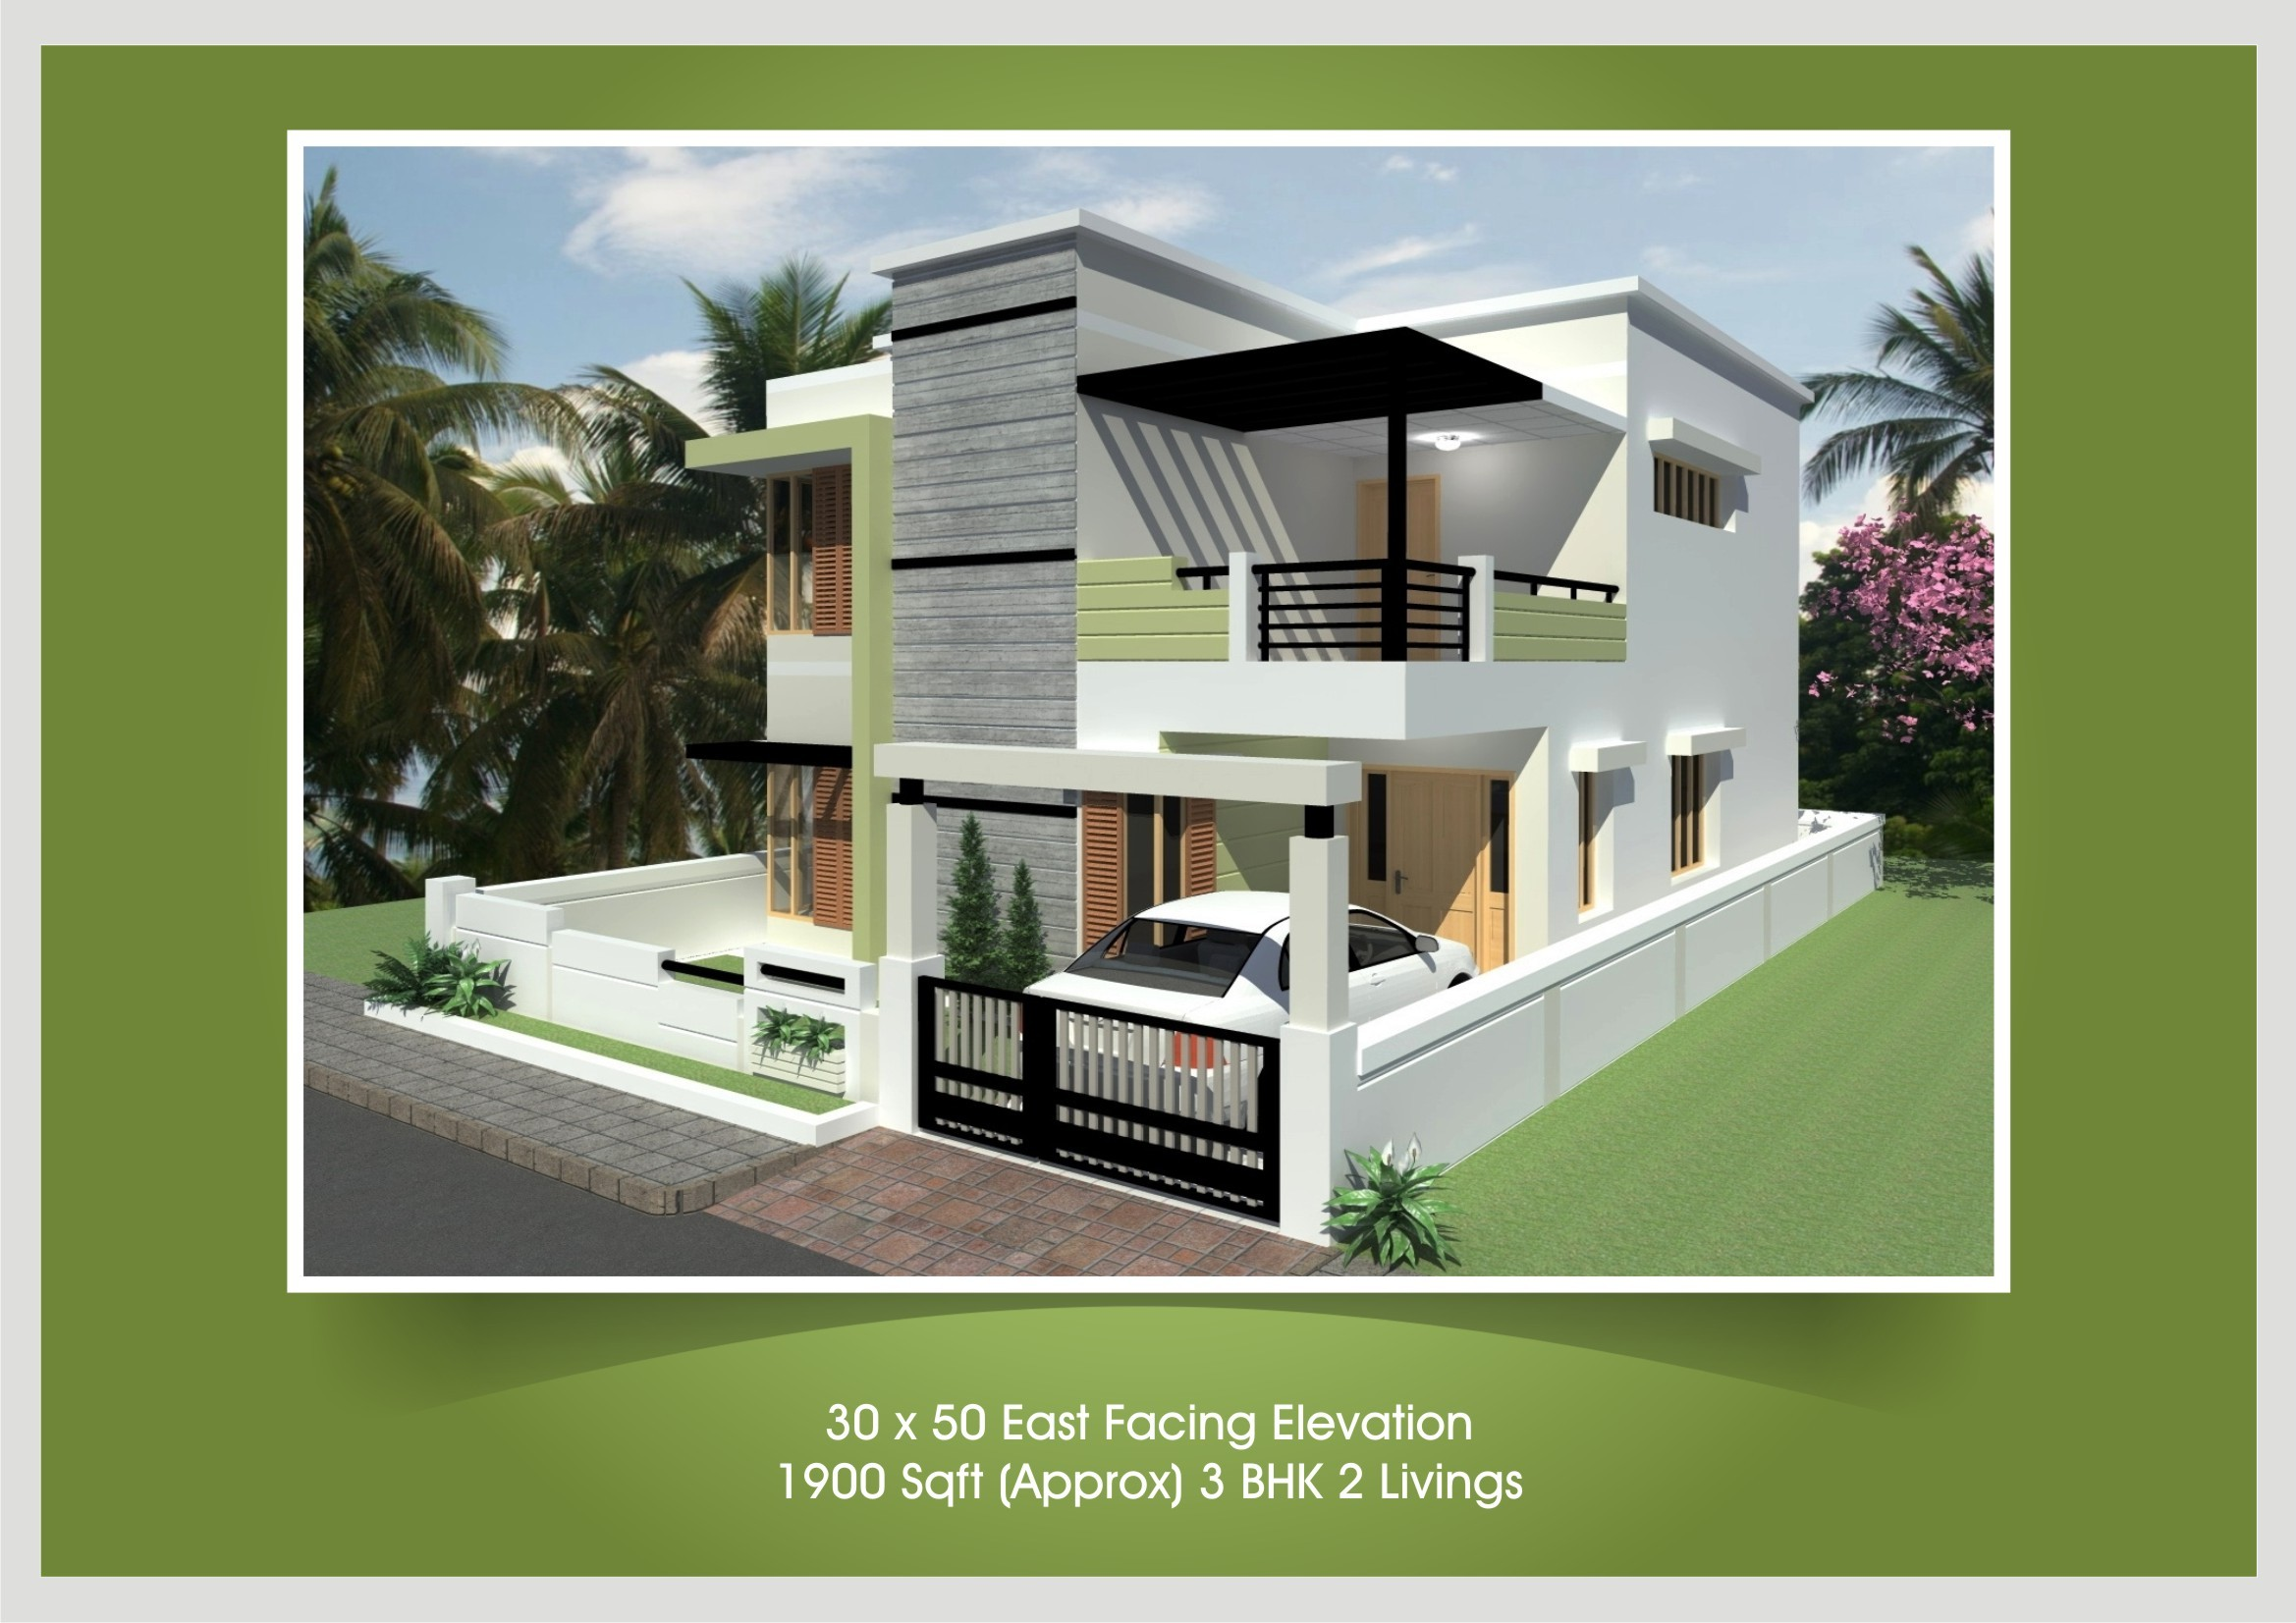 Upcoming residential villas beml mysore one 30x50 house plans